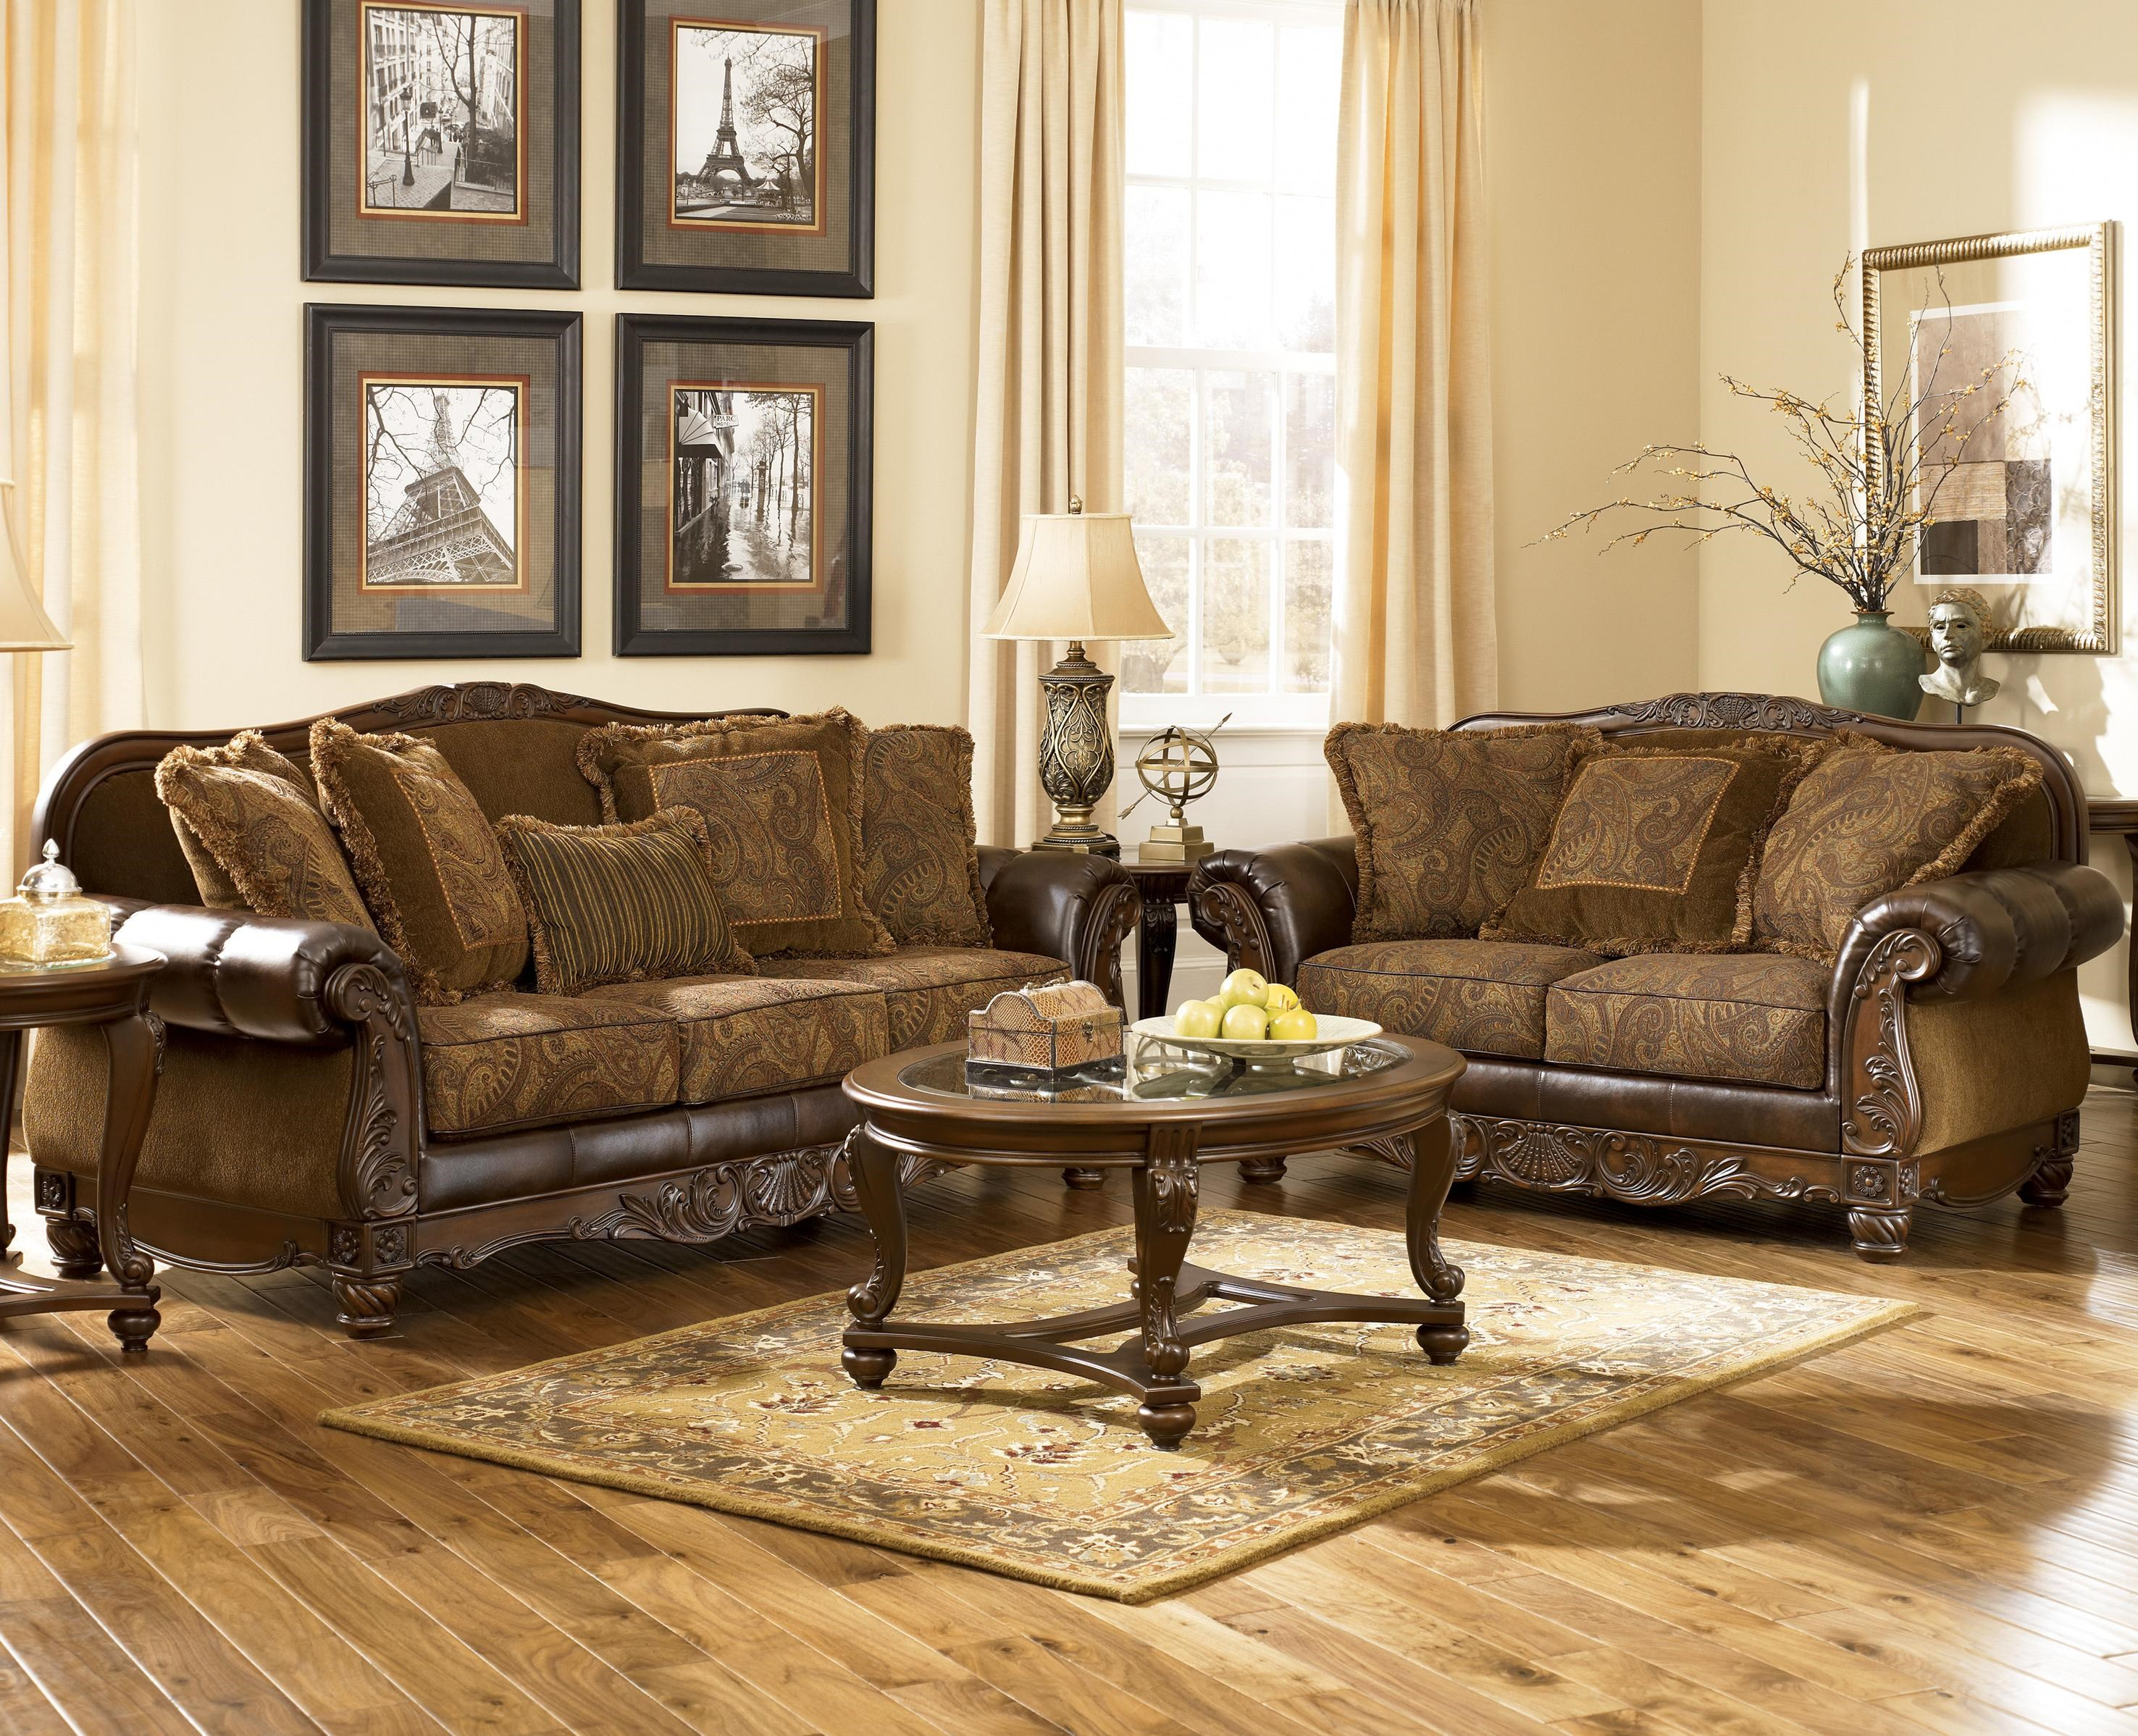 Signature Design by Ashley Furniture Fresco DuraBlend - Antique Stationary Living Room Group ...